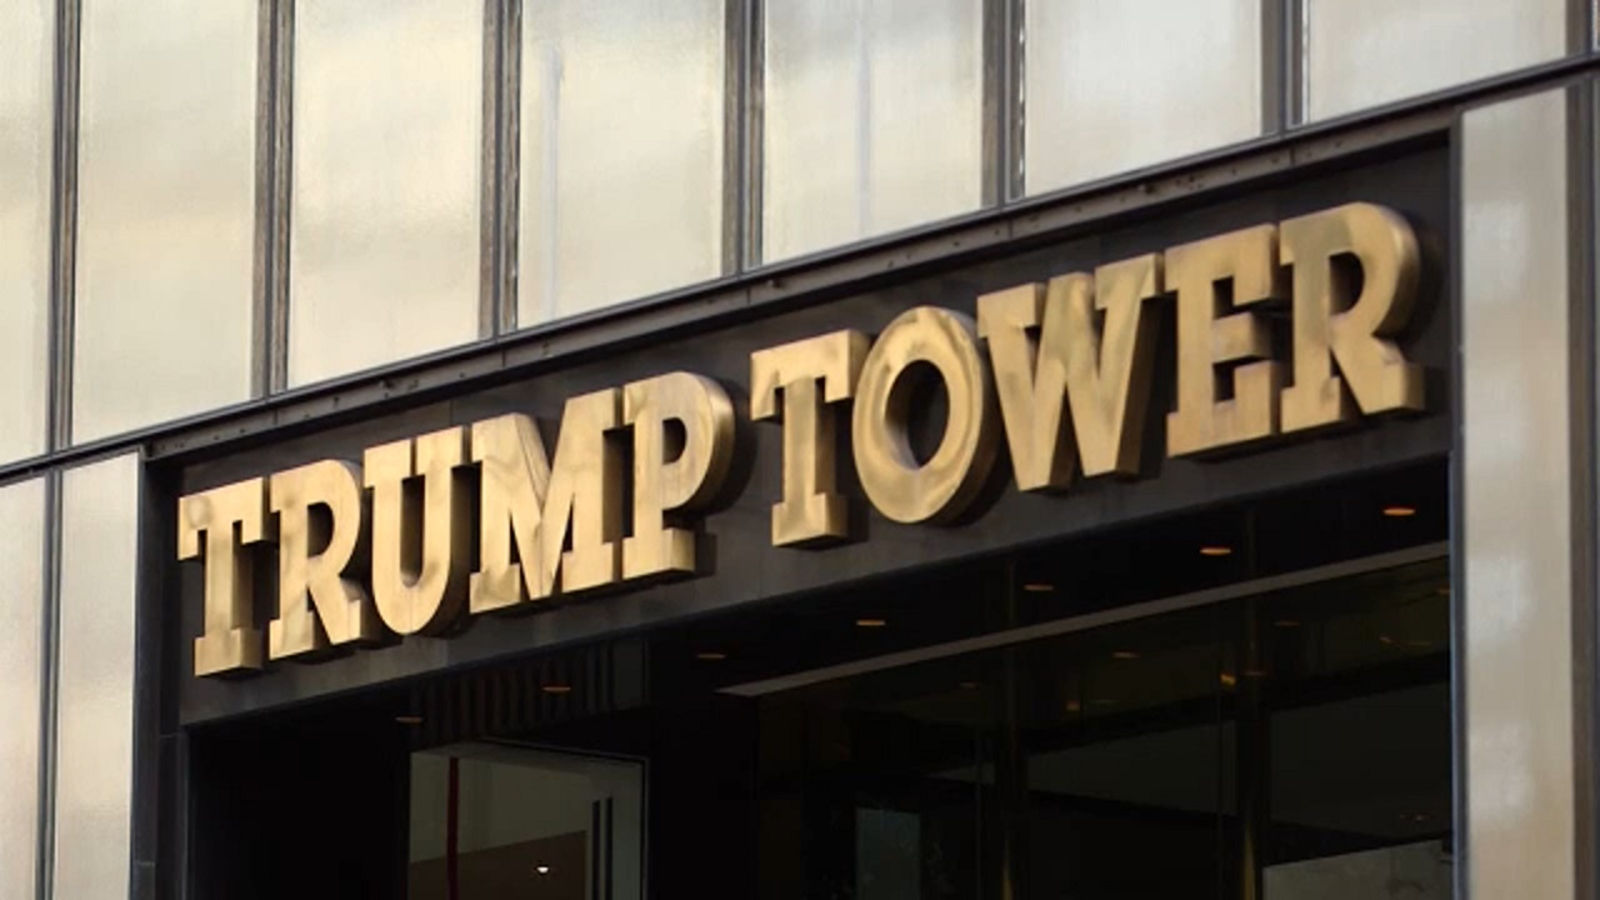 Police investigating 2 major jewelry thefts at Trump Tower in NYC